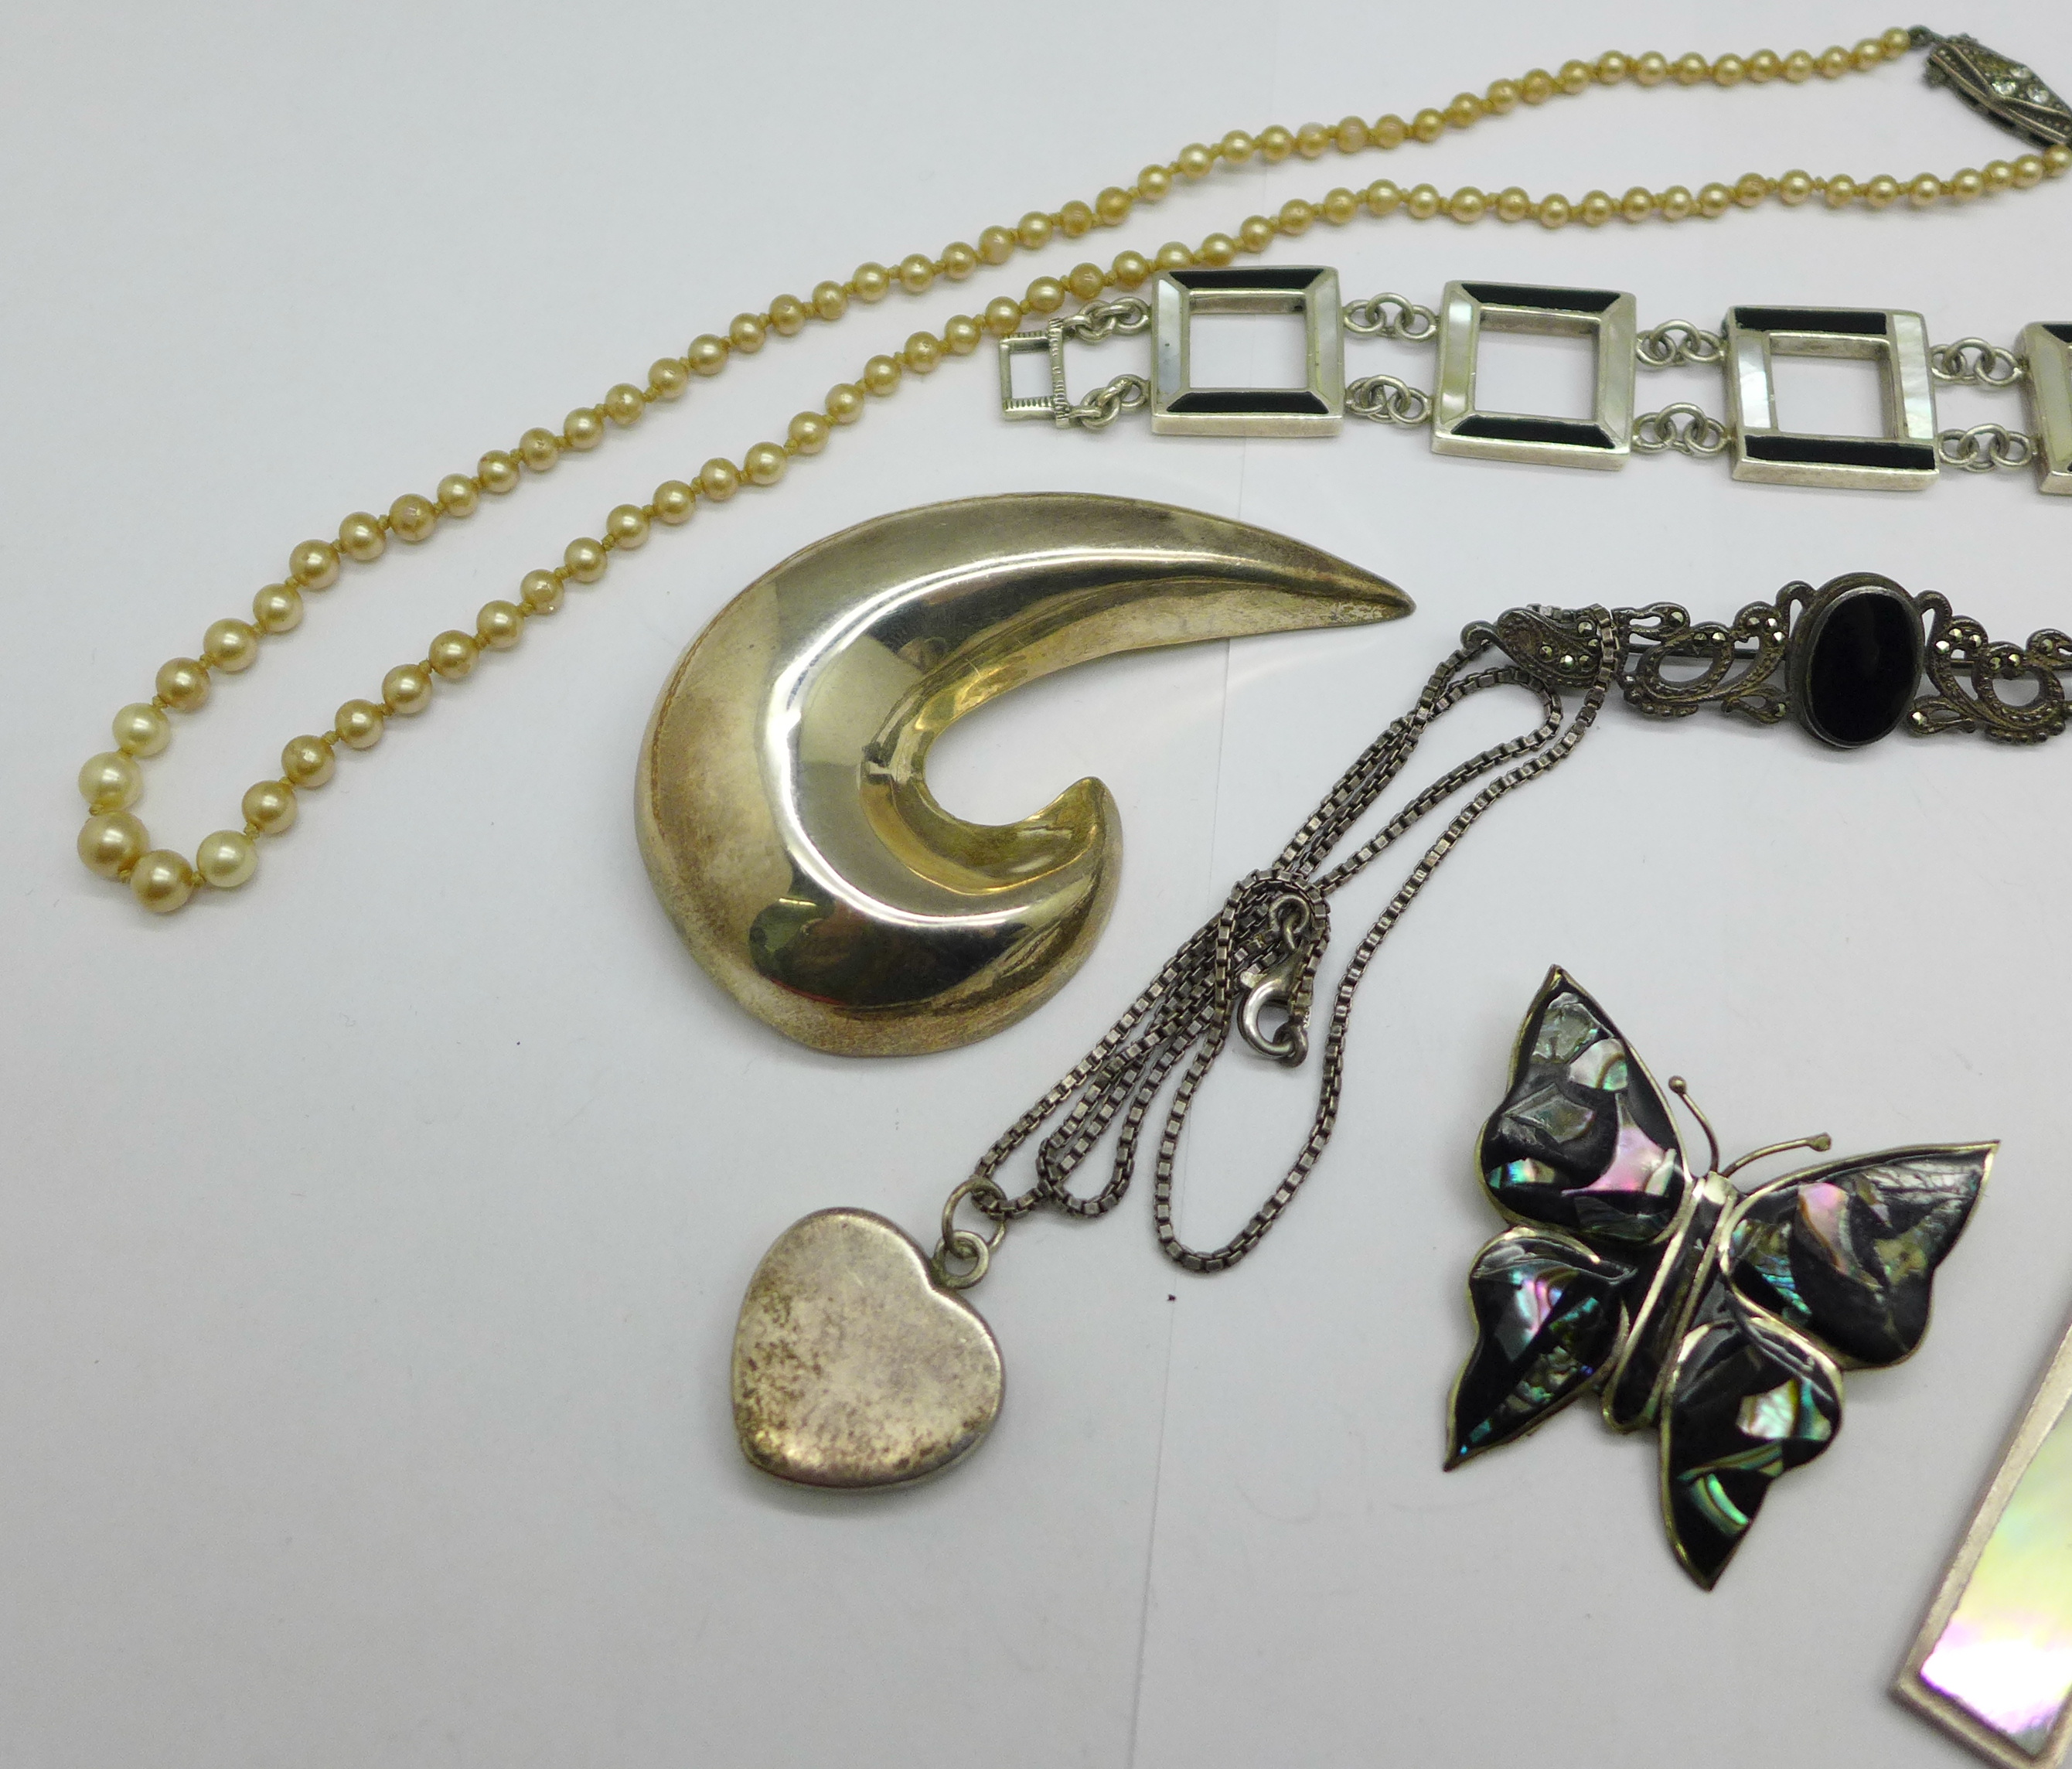 Three silver brooches, a silver bracelet, three pendants and chains, a necklace lacking fastener and - Image 2 of 3